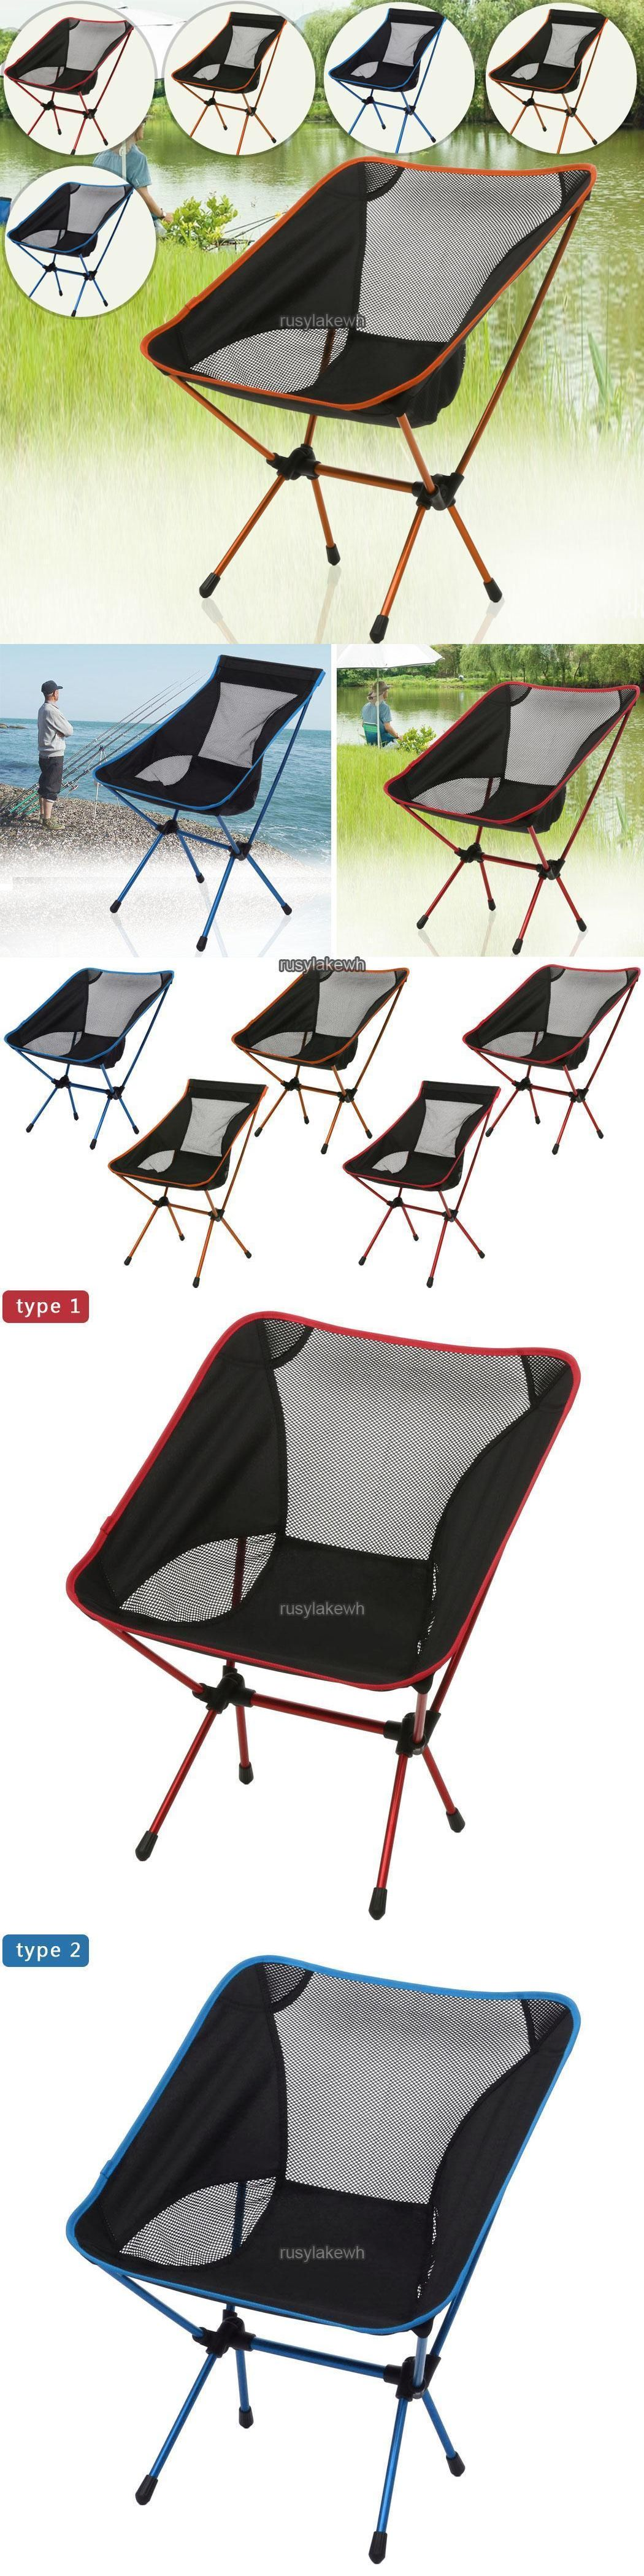 Portable Folding Camping Stool Chair Fishing Outdoor Garden Bbq